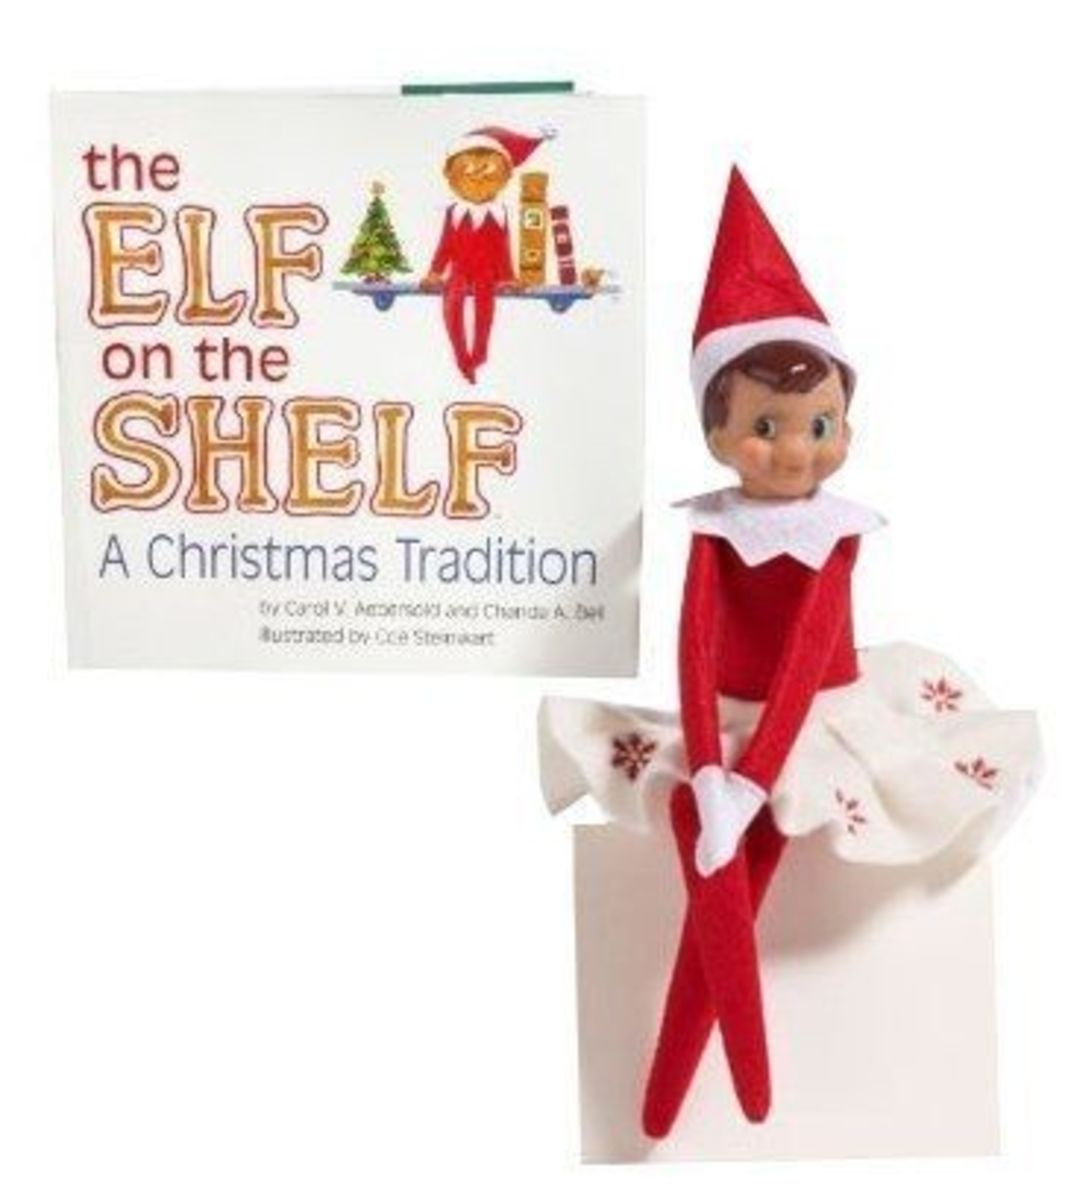 Here's an Elf on the Shelf for girls!